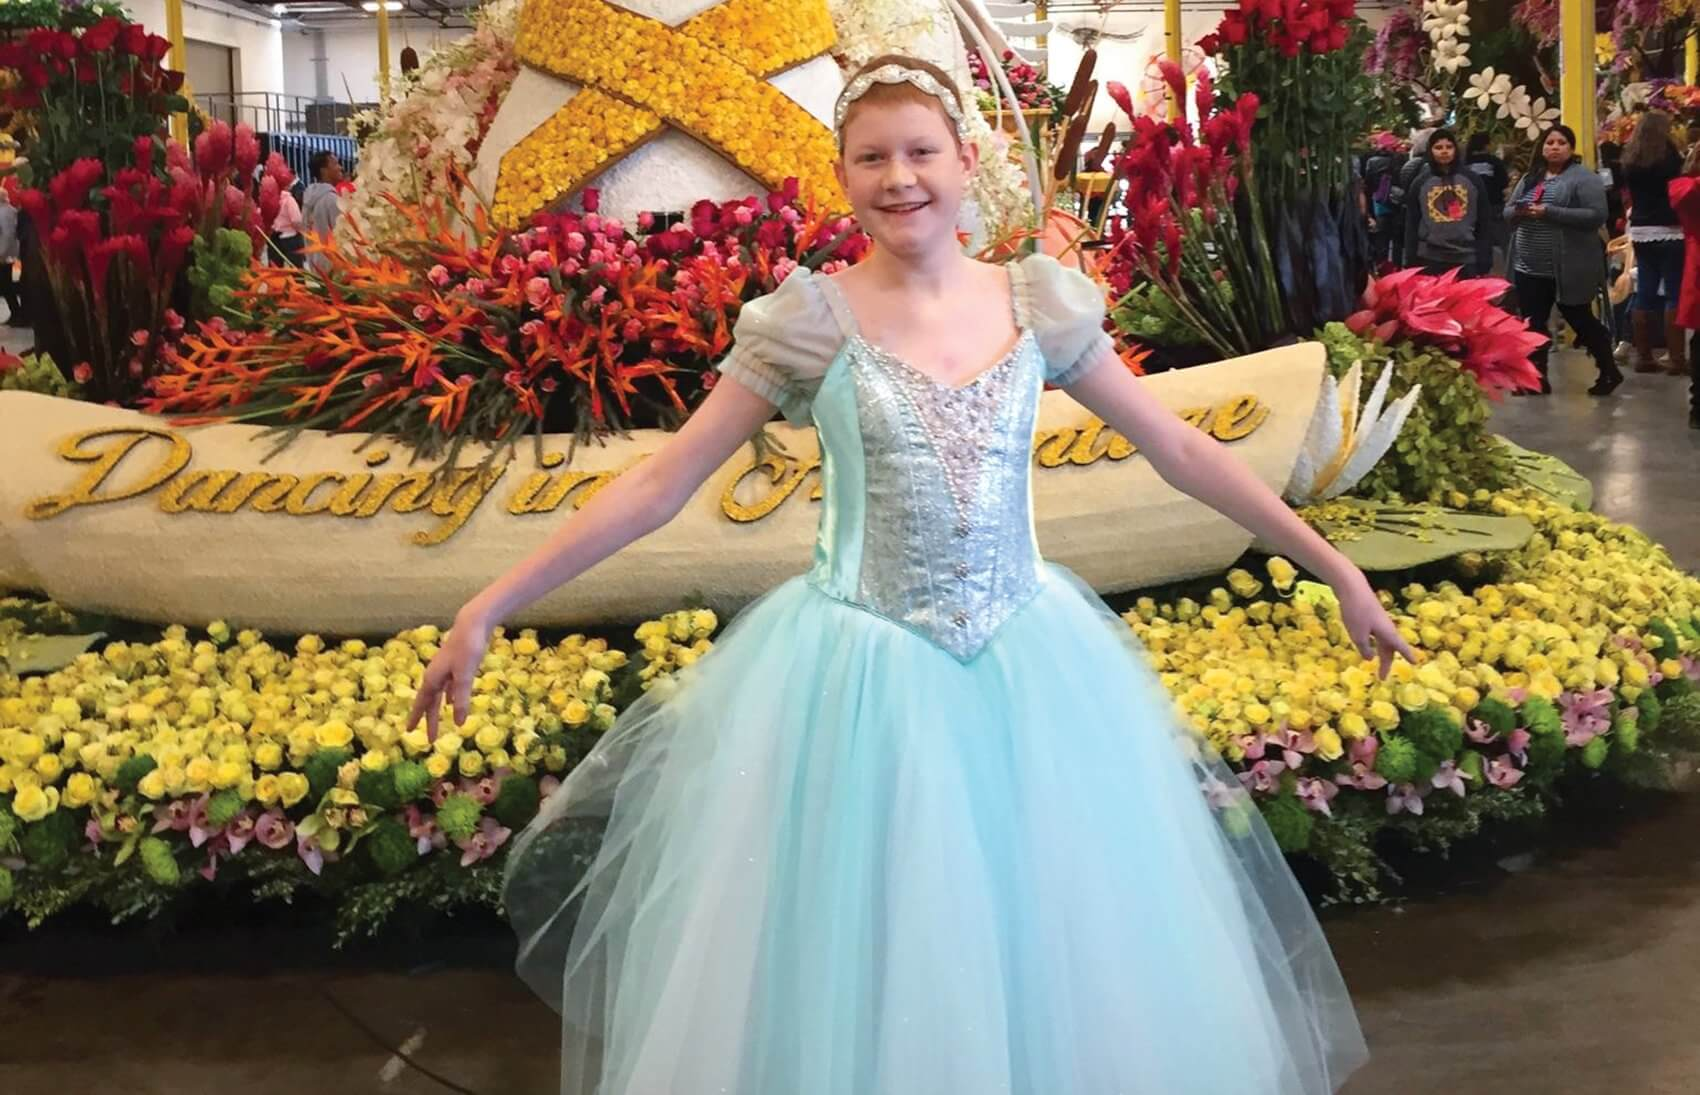 The Houston Ballet hand-made a costume for Peyton to wear on the Northwestern Mutual float in the 2016 Rose Parade. (Credit: Northwestern Mutual)